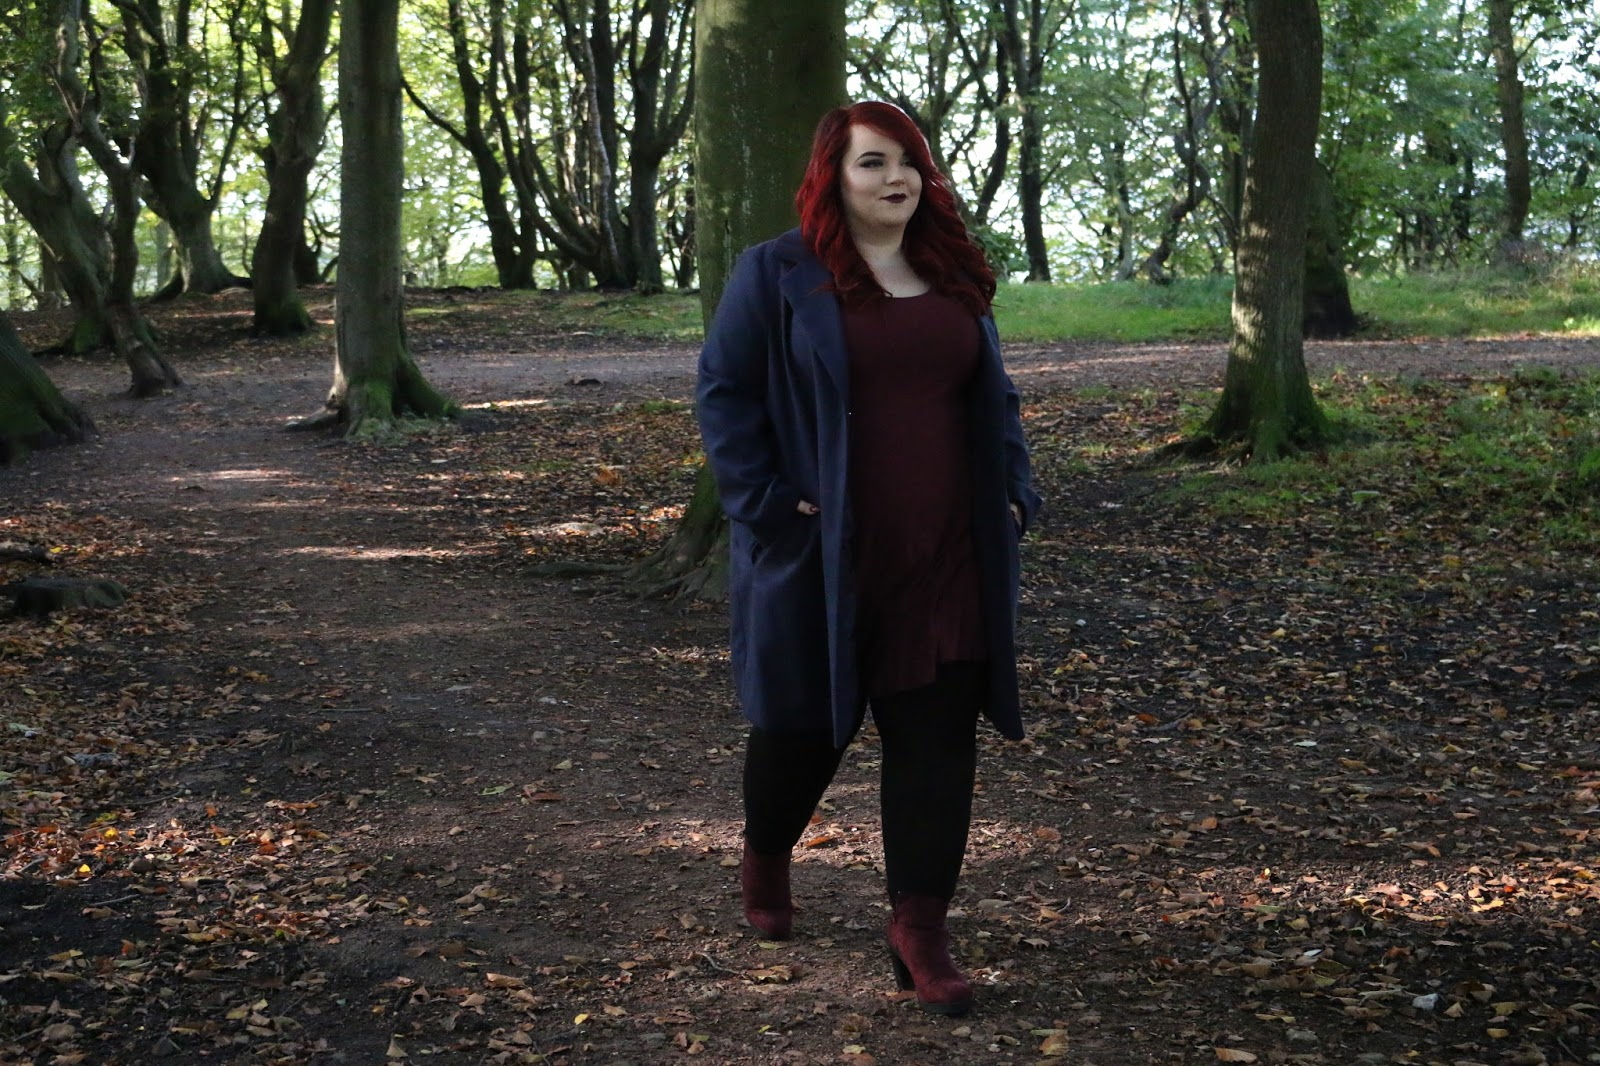 AW15 Plus Size Fashion Lookbook with Newlook, shemightbeloved, georgina grogan